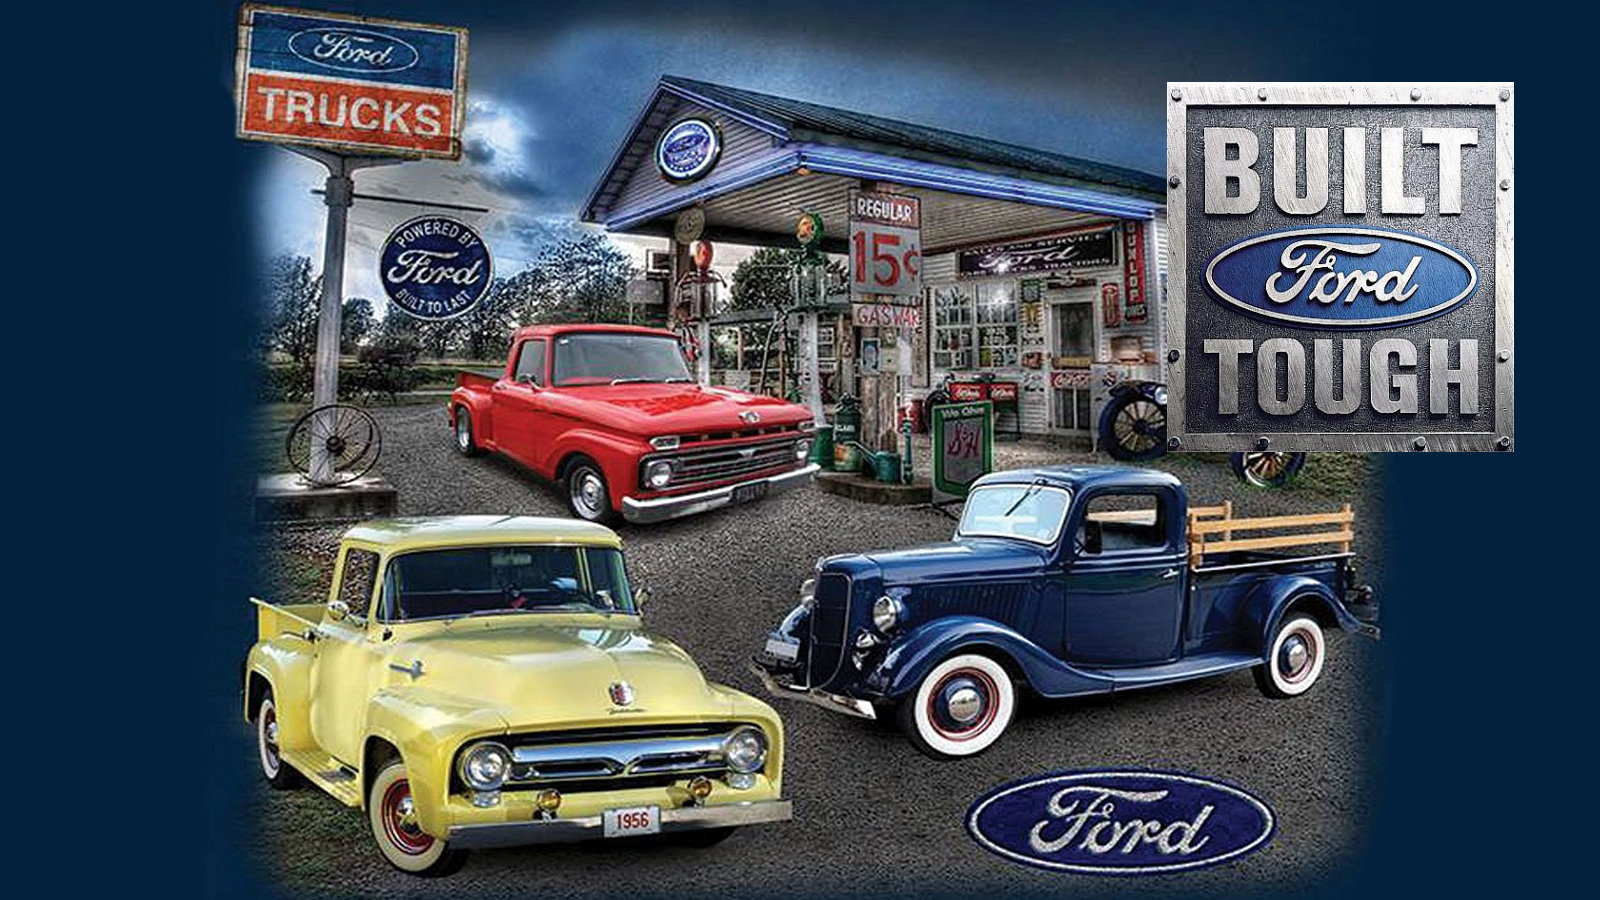 Ford Trucks that were Built to Outlast